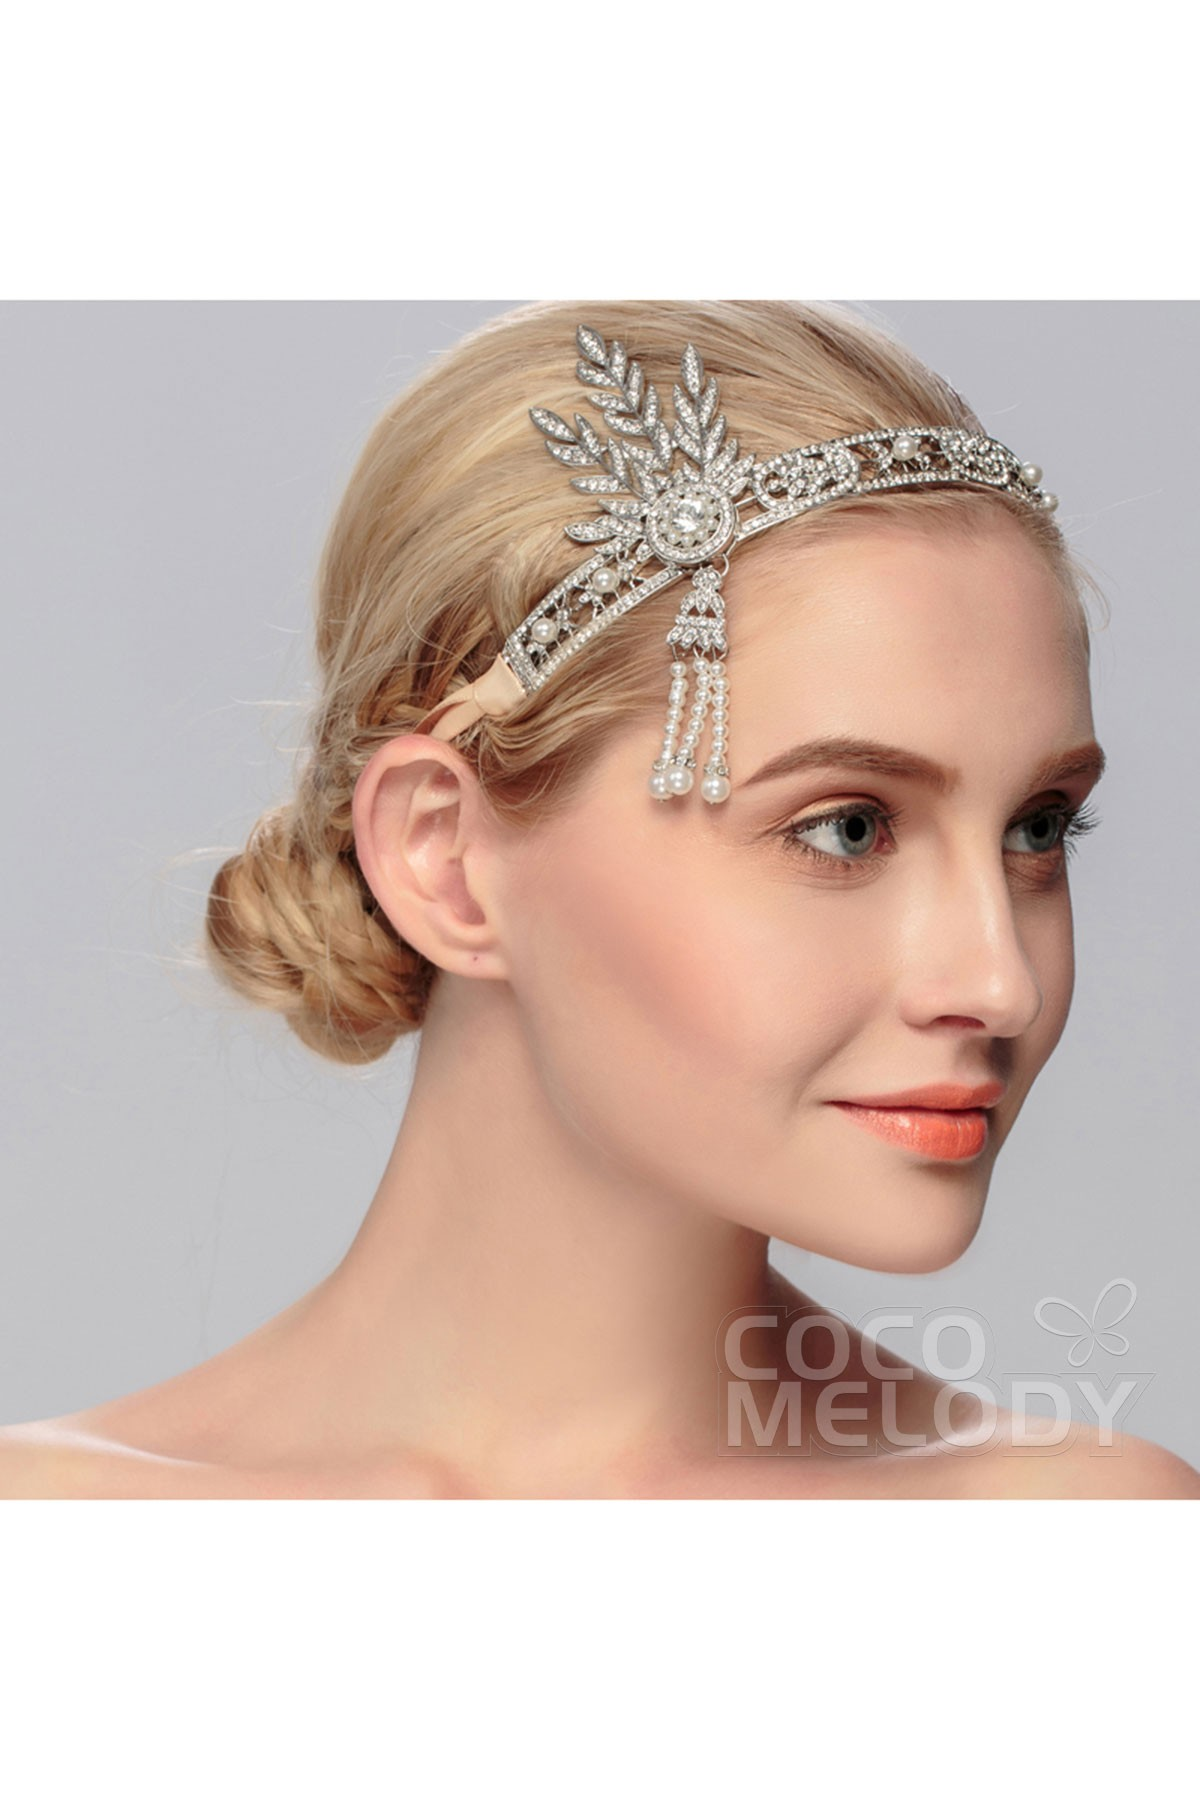 Impressive Silver Cloud Alloy Wedding Headpiece with Crystal and Imitation Pearl HS-J2762